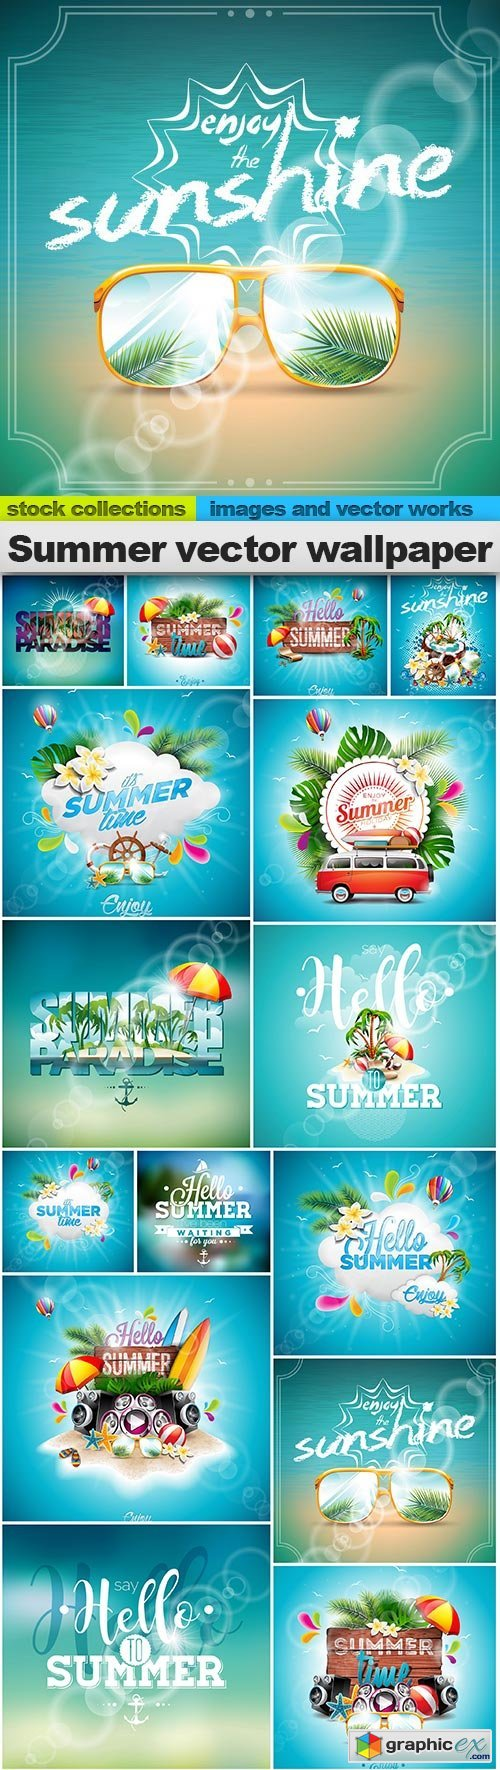 Summer vector wallpaper, 15 x EPS